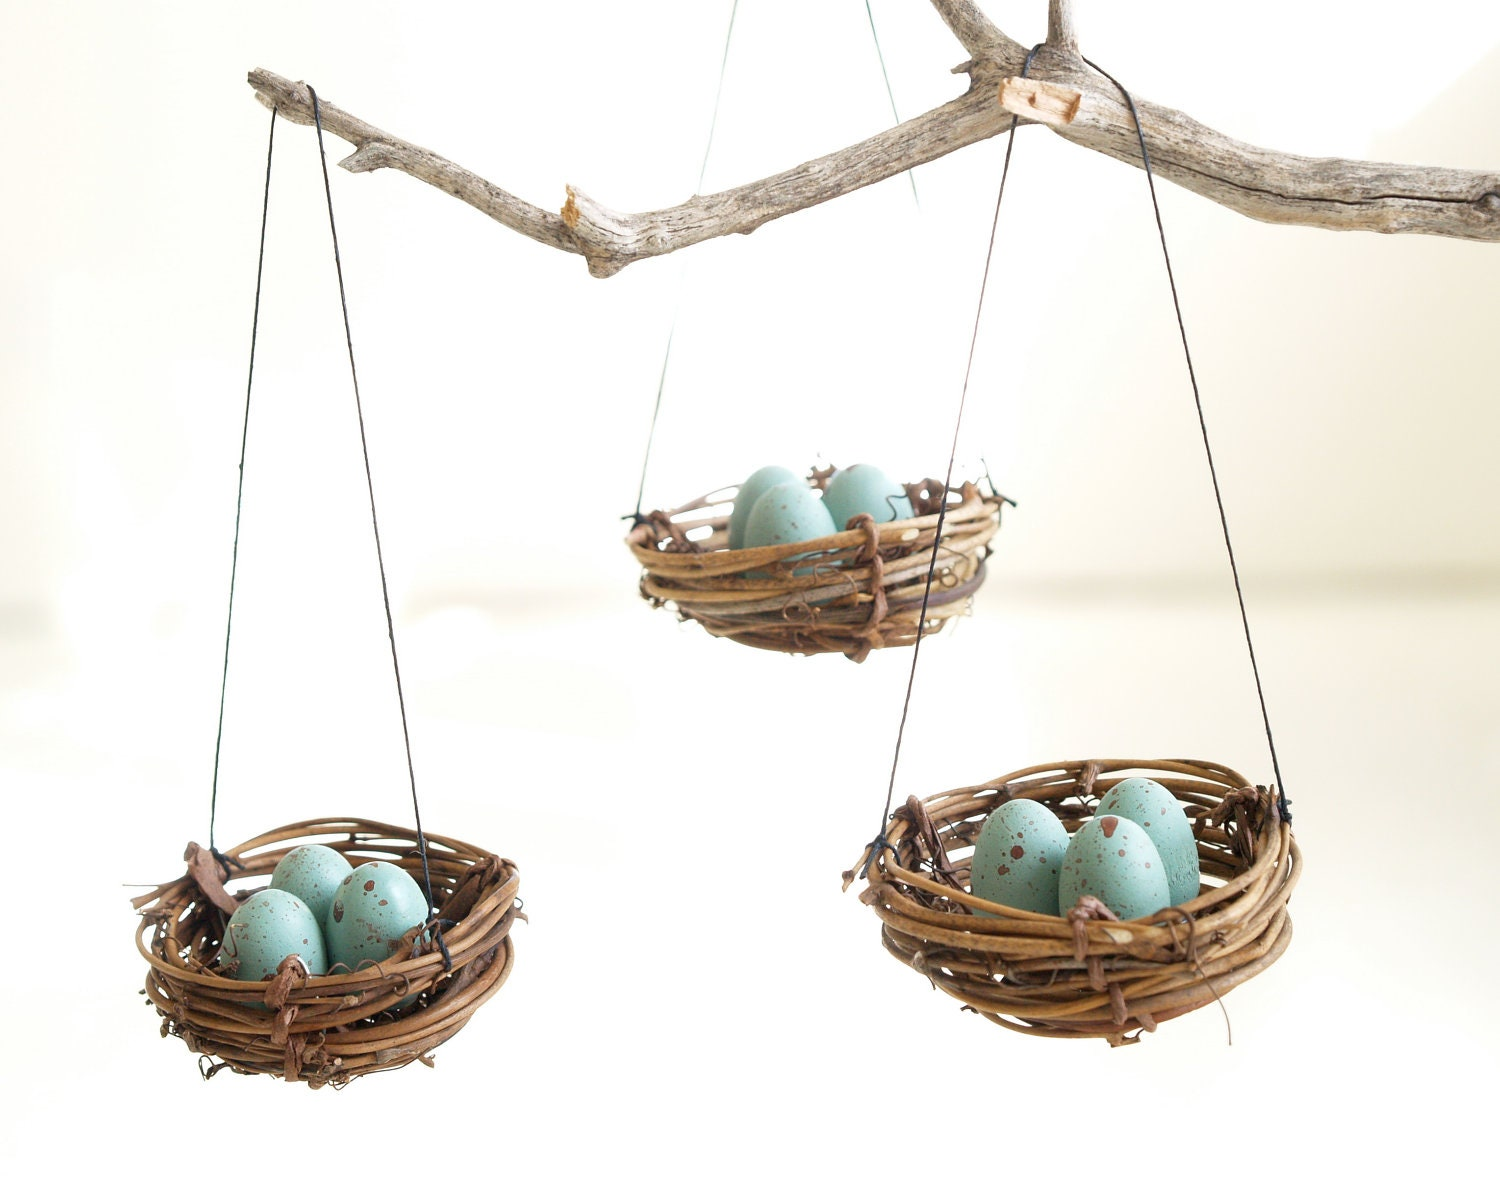 Easter Egg Ornaments, Blue Robins Egg Nests, Tree Decorations, Spring Decorating, natural nature inspired handmade eco friendly Home Decor - Fairyfolk